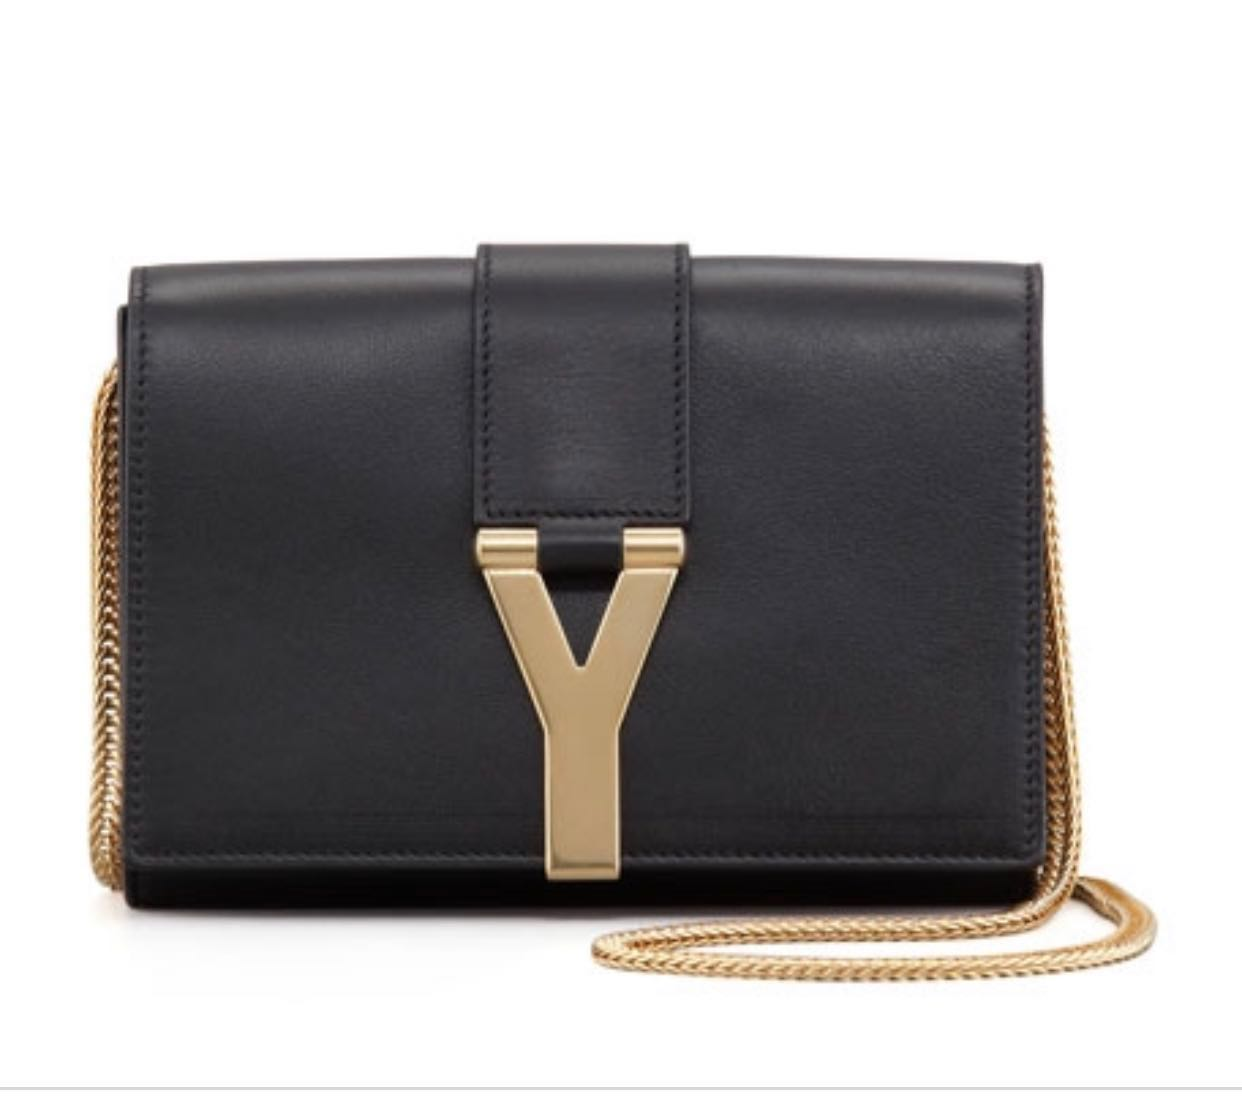 Yves Saint Laurent Mini Y Ligne Crossbody Bag f8751b59d37c4